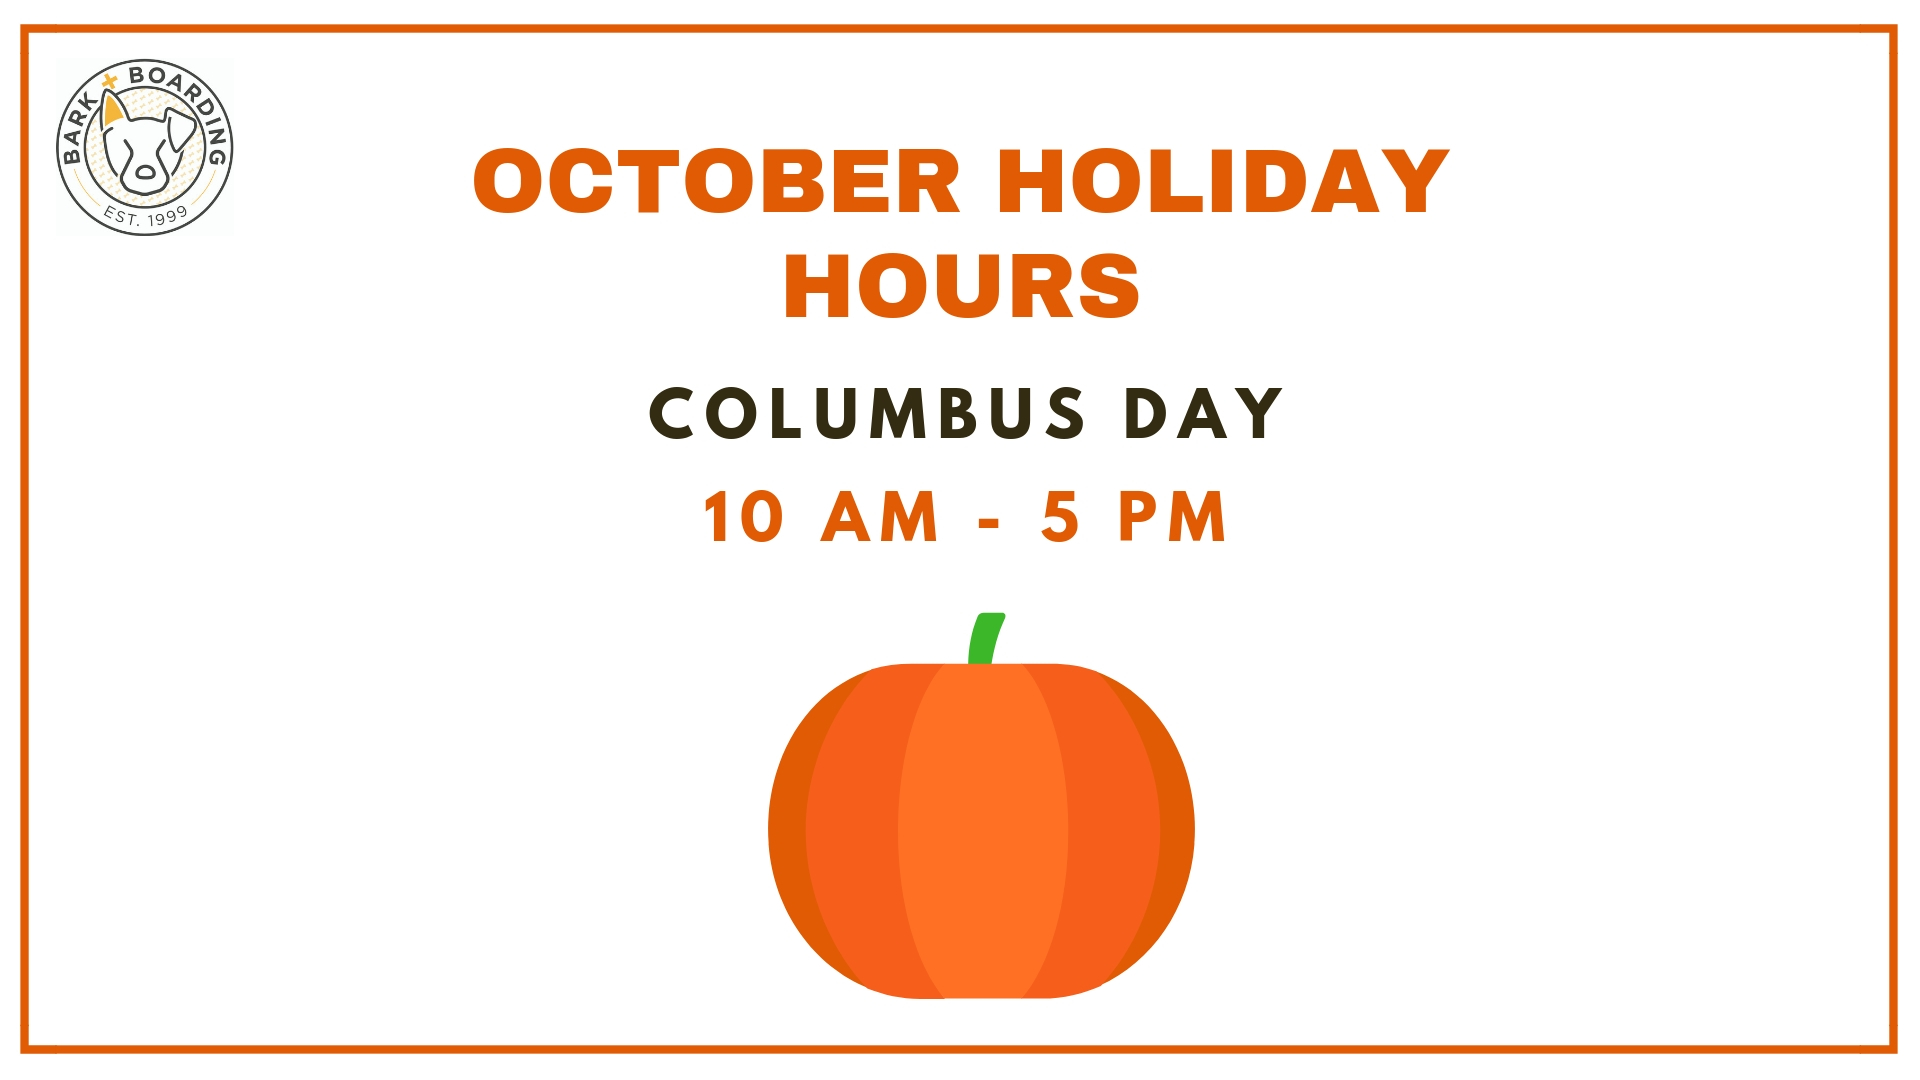 October Holiday Hours.jpg